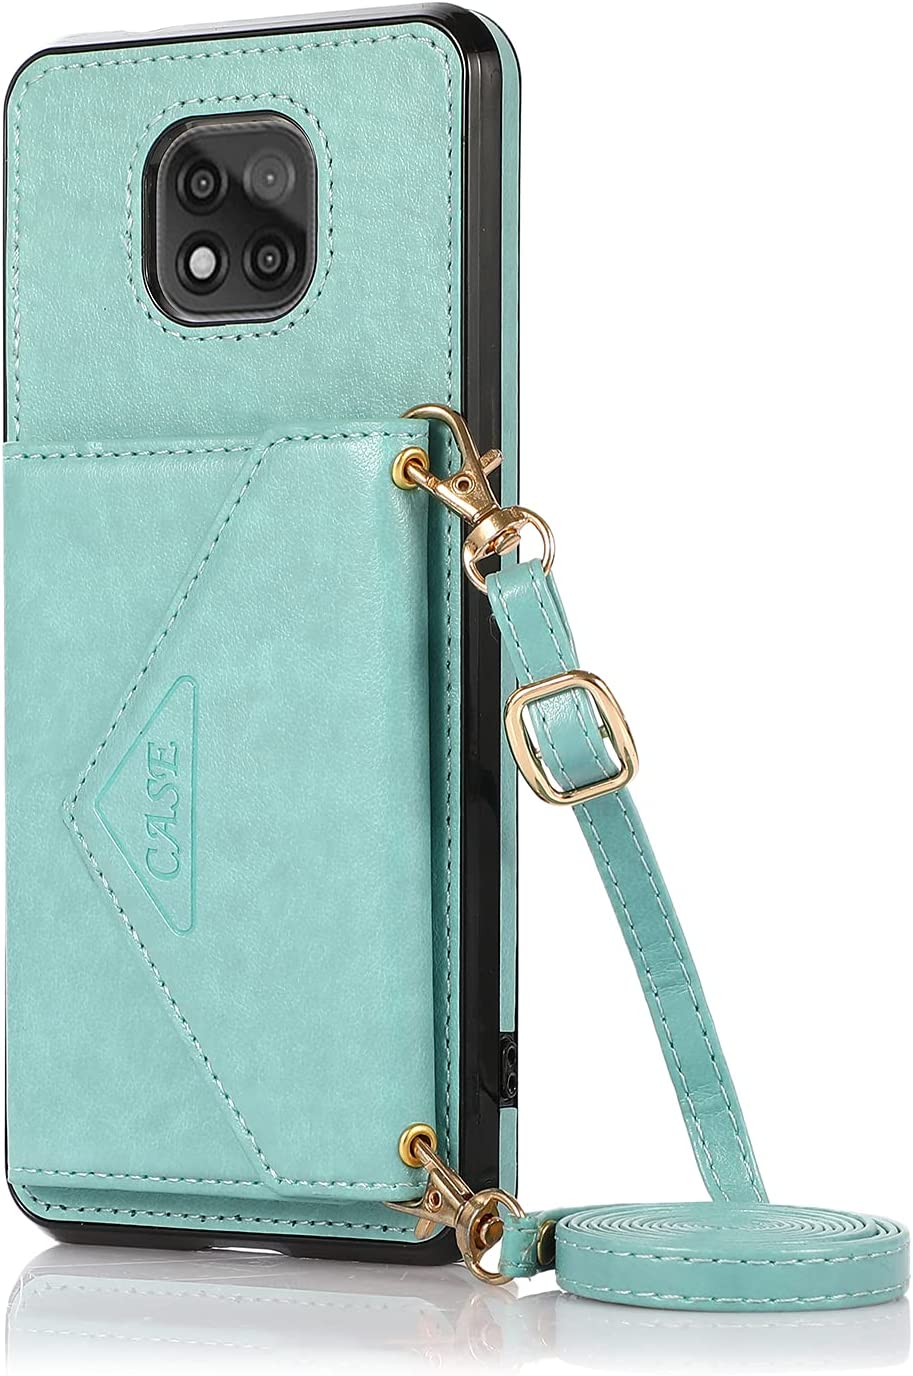 DAMONDY for Moto G Power 2021 Wallet Case,Moto G Power 2021Flip Case, Slim Protective Case with Credit Card Slot Holder Flip Folio Soft PU Leather Magnetic Closure Cover for Moto G Power 2021 -Mint